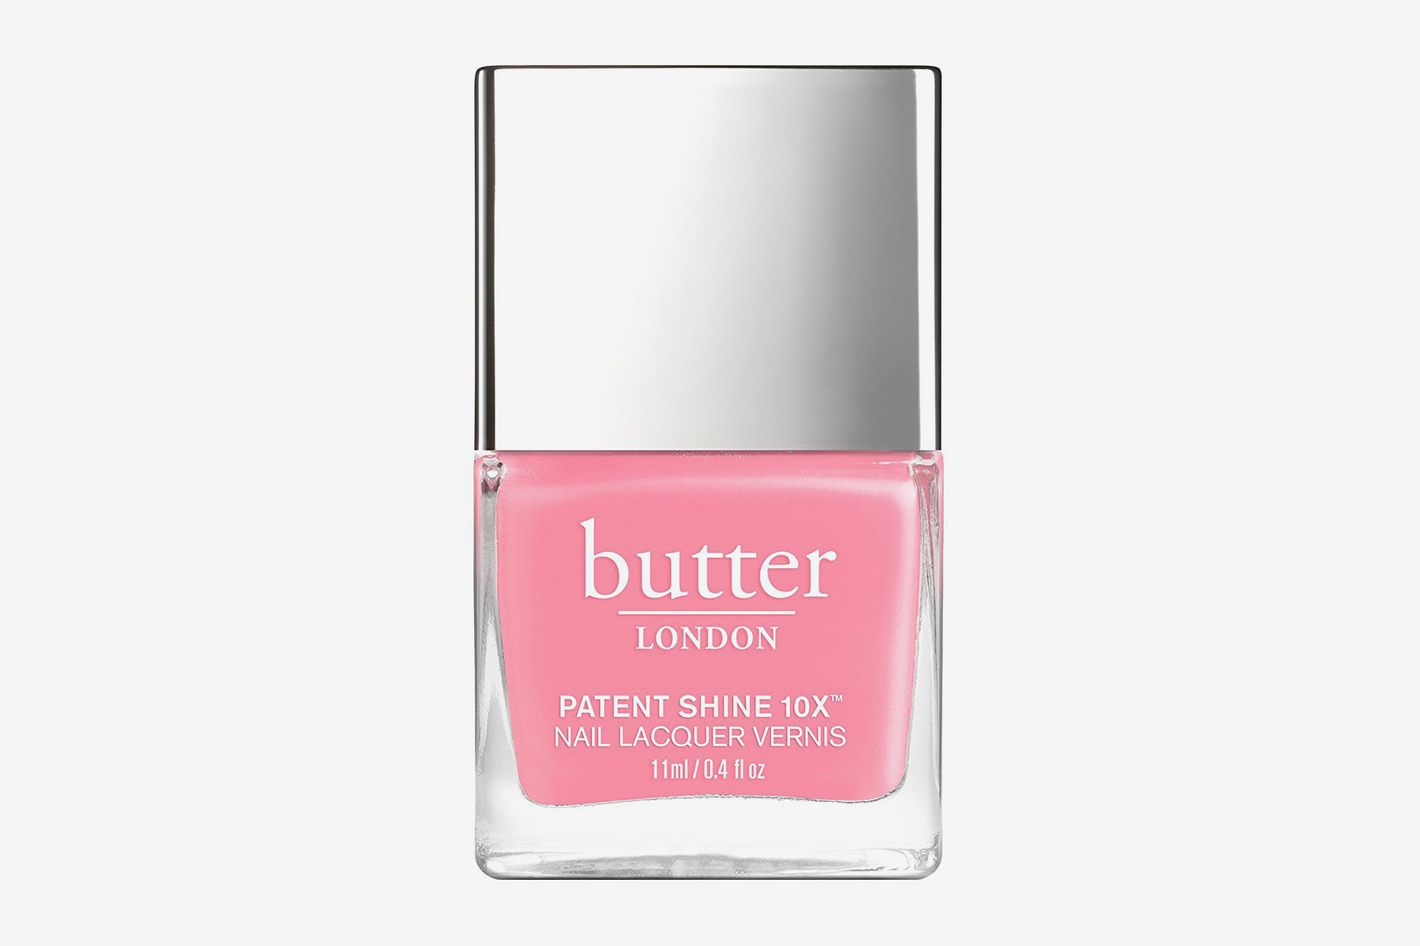 Butter London 10X Nail Lacquer in Fruit Machine